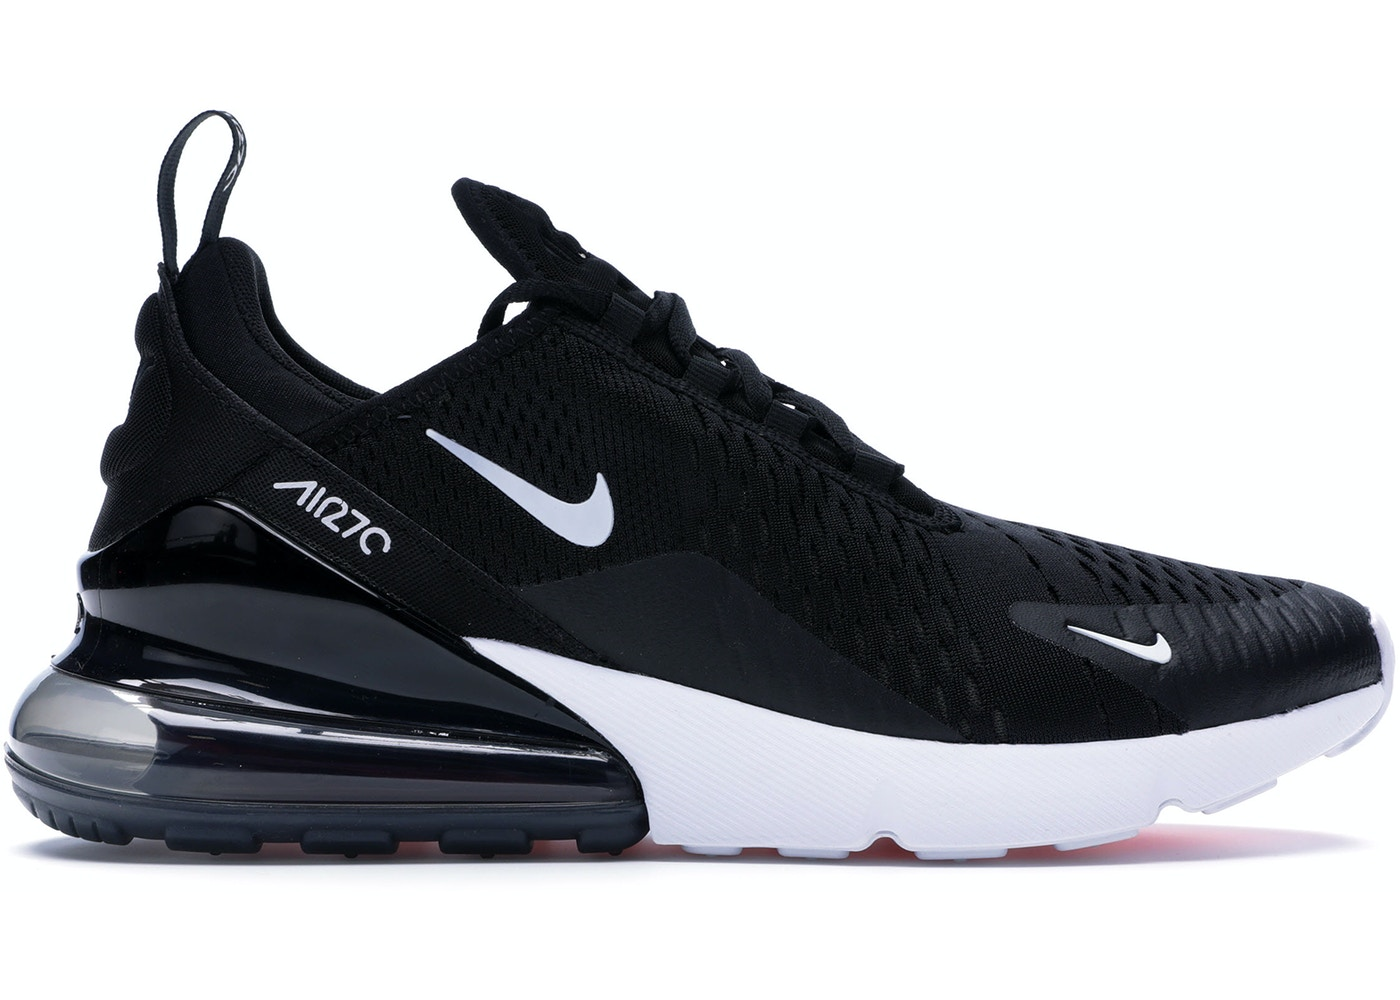 de204c50 Air Max 270 Black White - AH8050-002